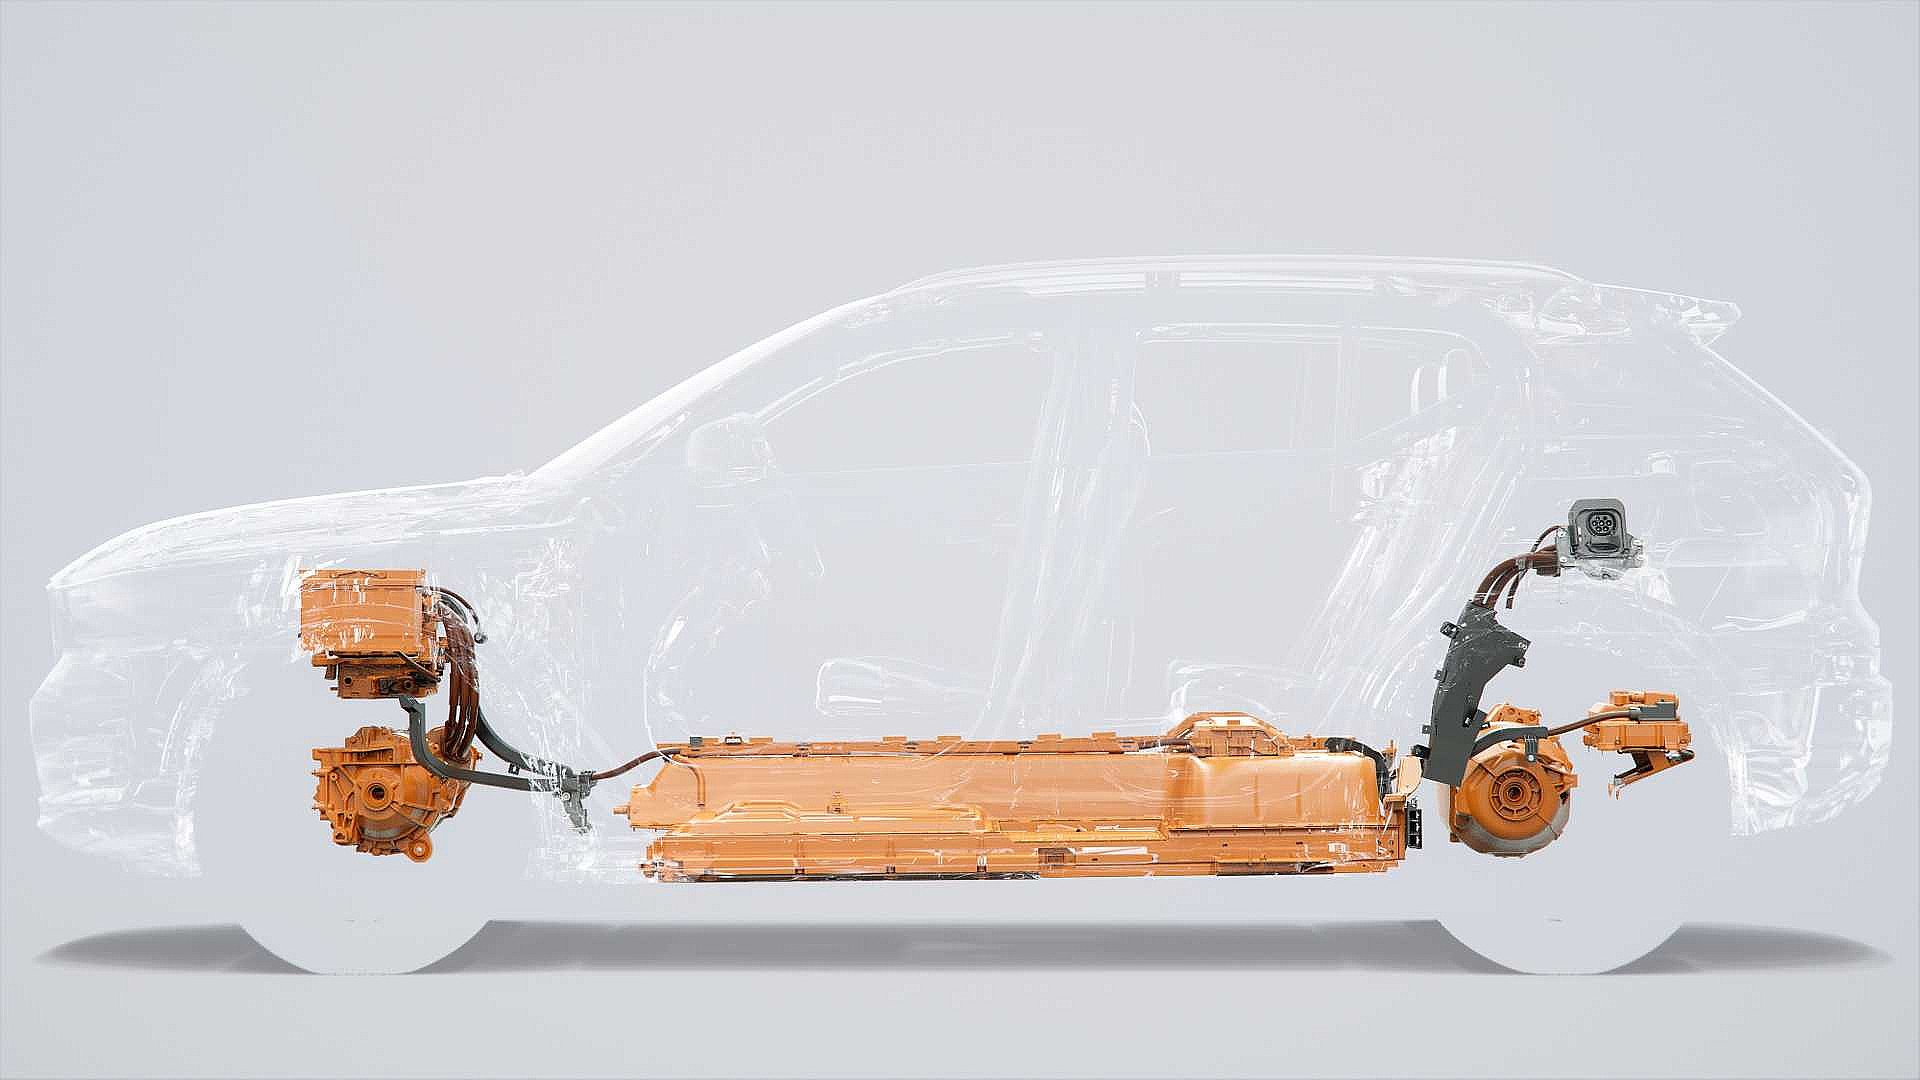 volvo-xc40-ev-the-companys-first-bev-will-be-revealed-on-october-16